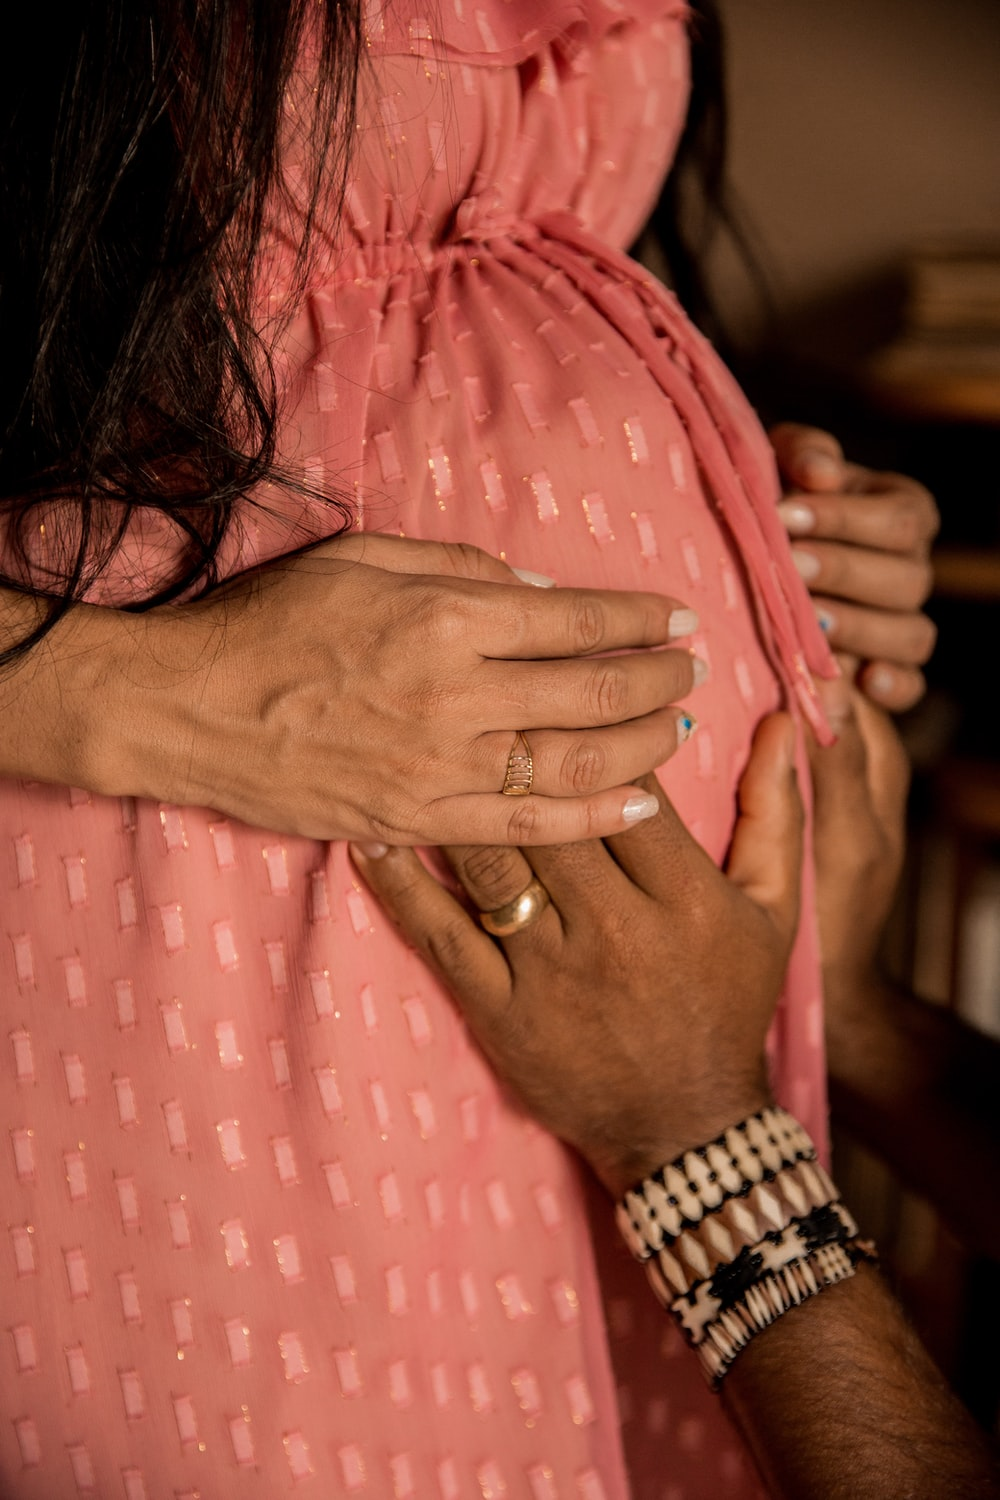 woman in pink and white polka dot dress wearing gold ring